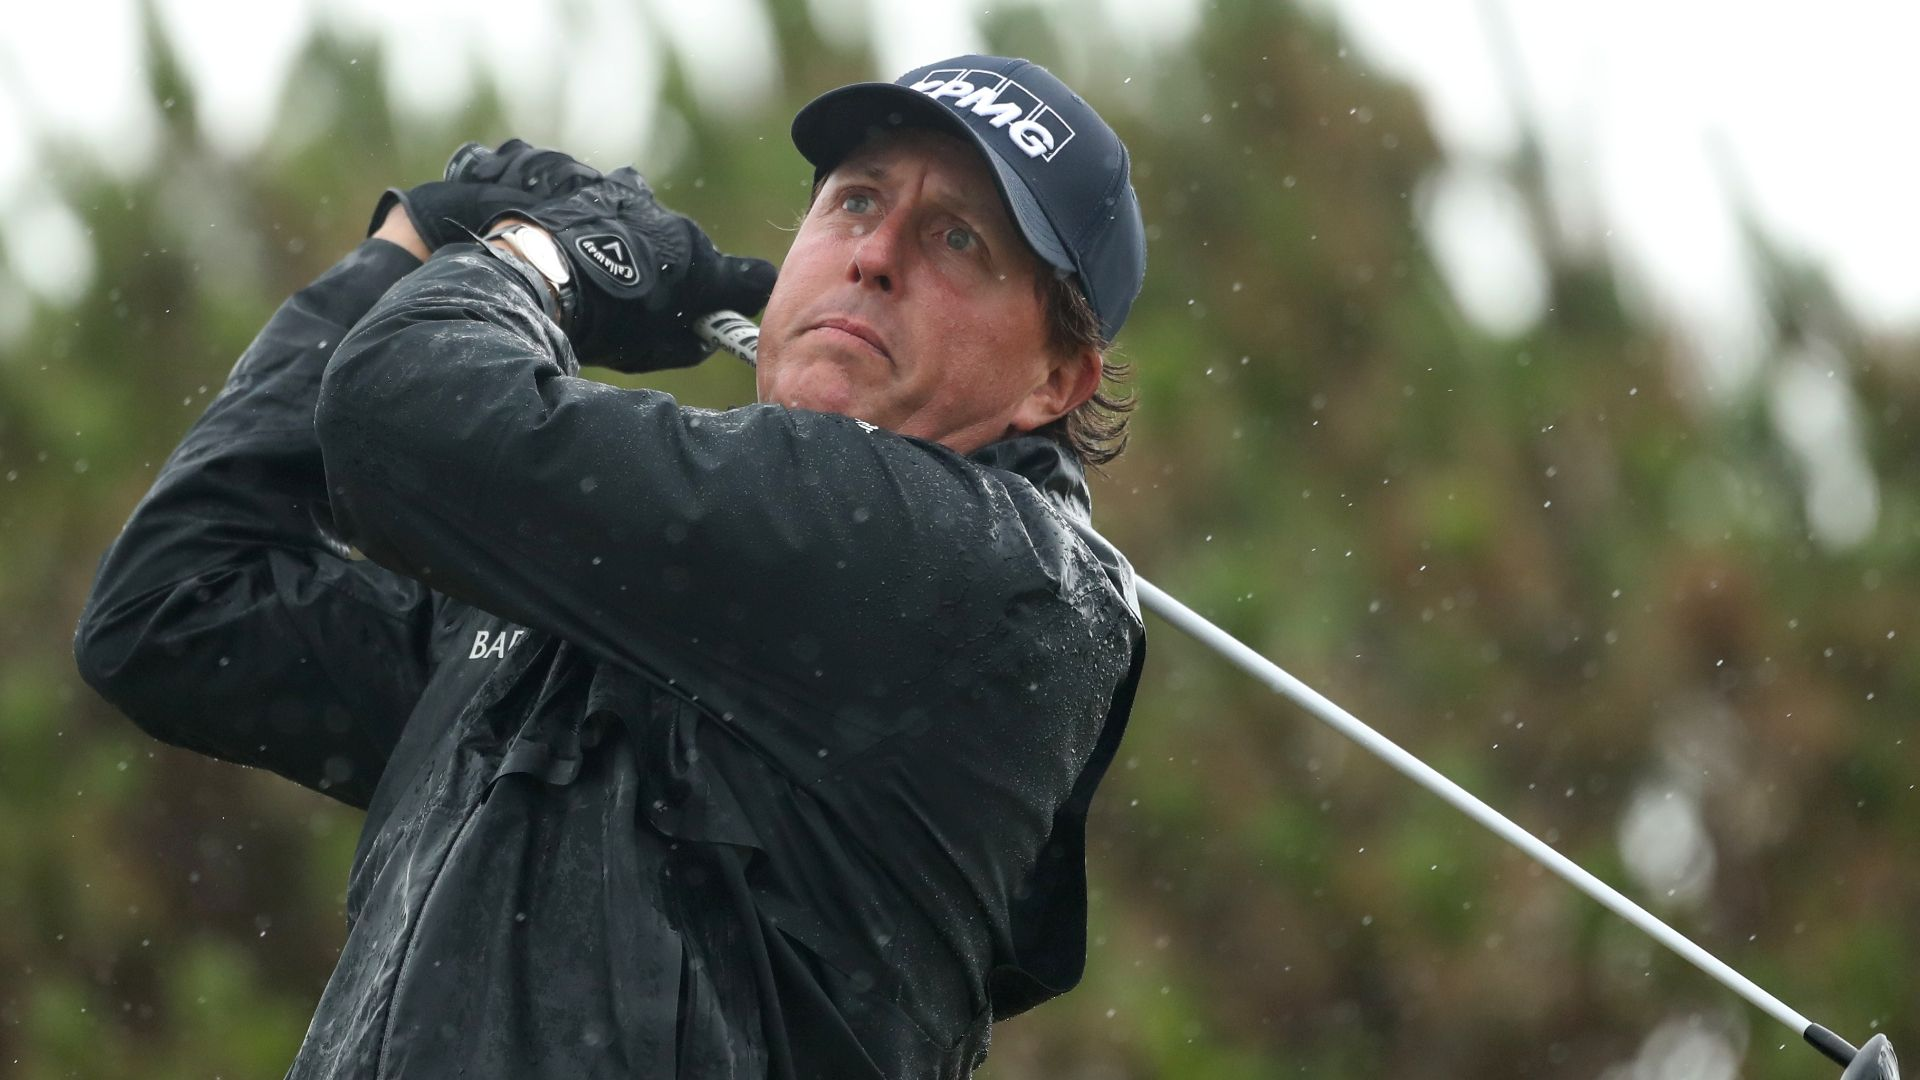 https://secure.espncdn.com/combiner/i?img=/media/motion/2016/0715/dm_160715_golf_collins_on_mickelson/dm_160715_golf_collins_on_mickelson.jpg